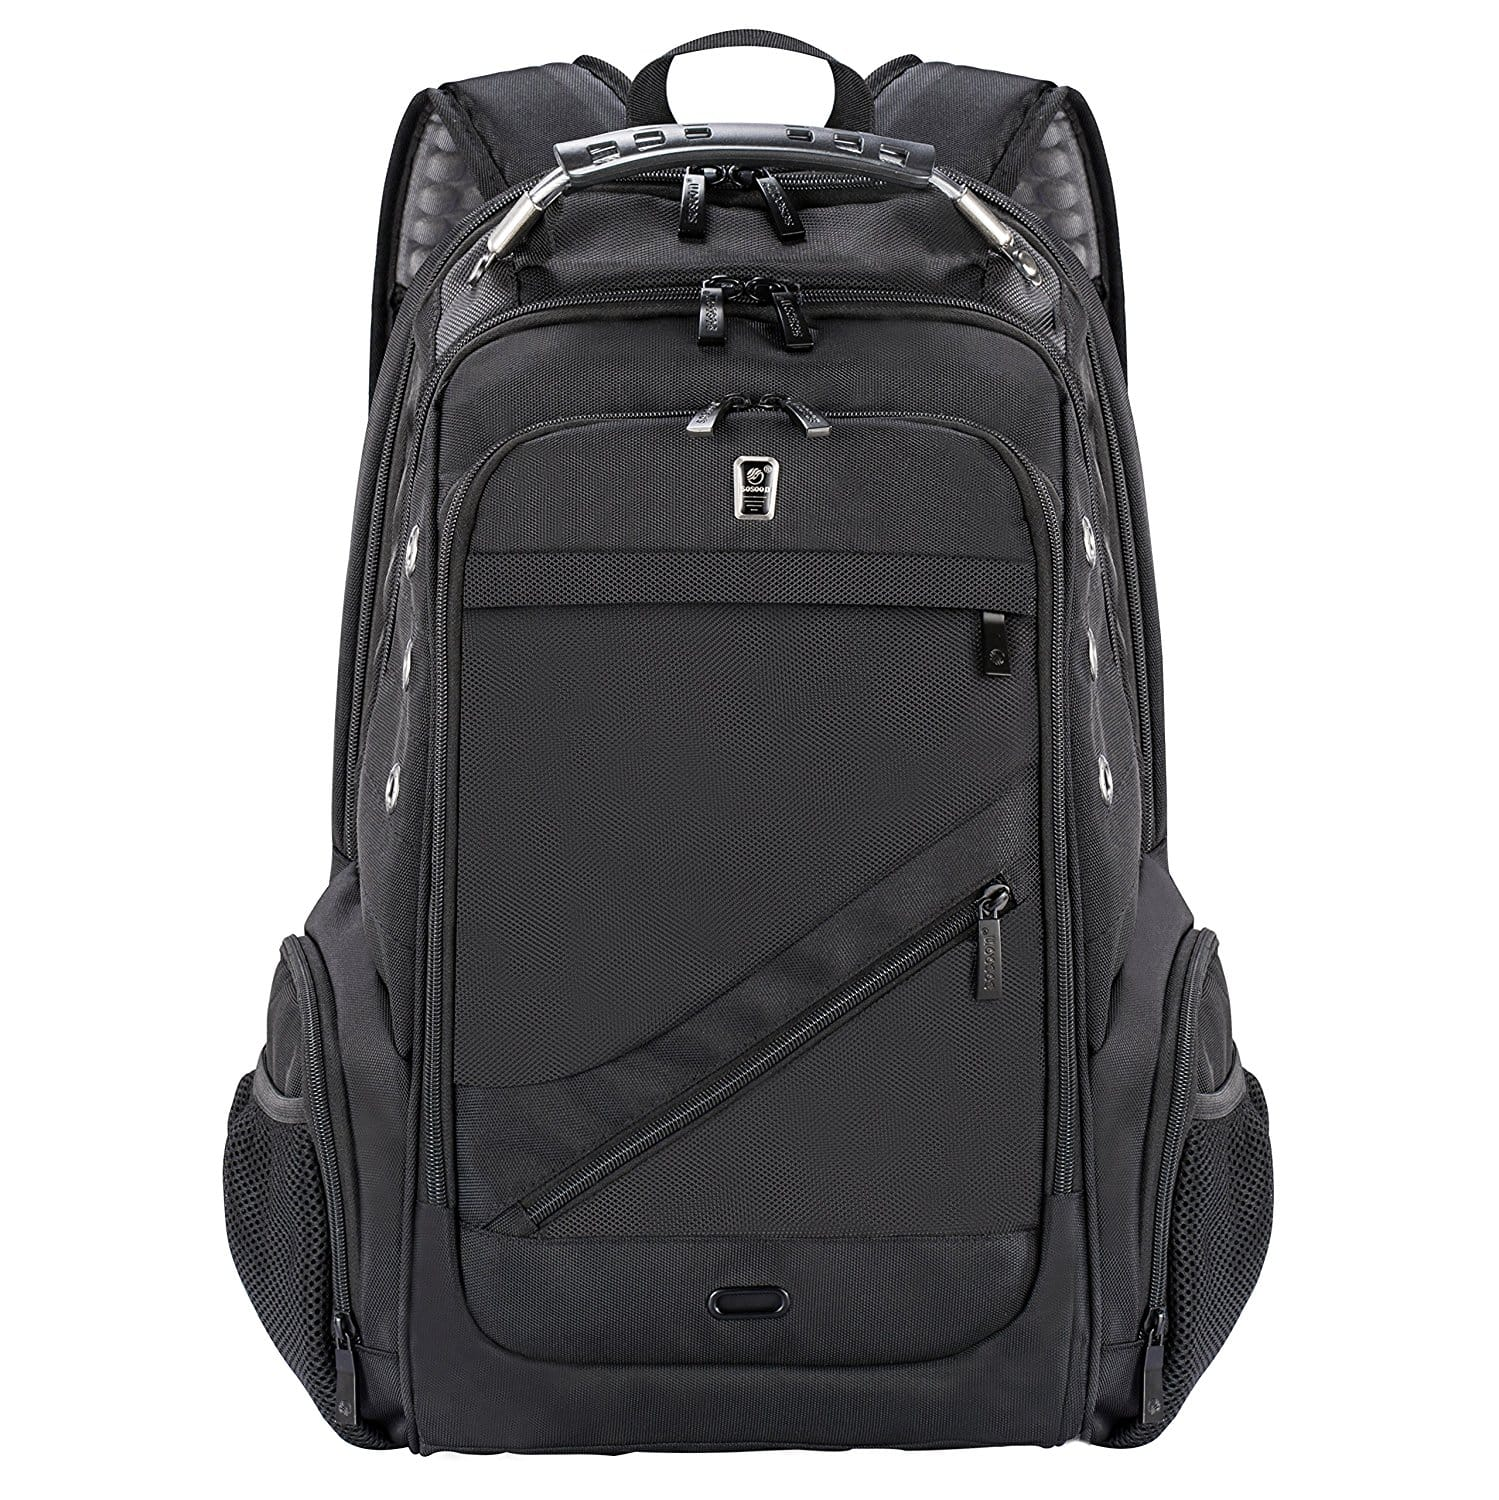 Water Resistant Anti-Theft Laptop Backpack with USB Charging Port $19.79 (reg. $32.99) Ships Free